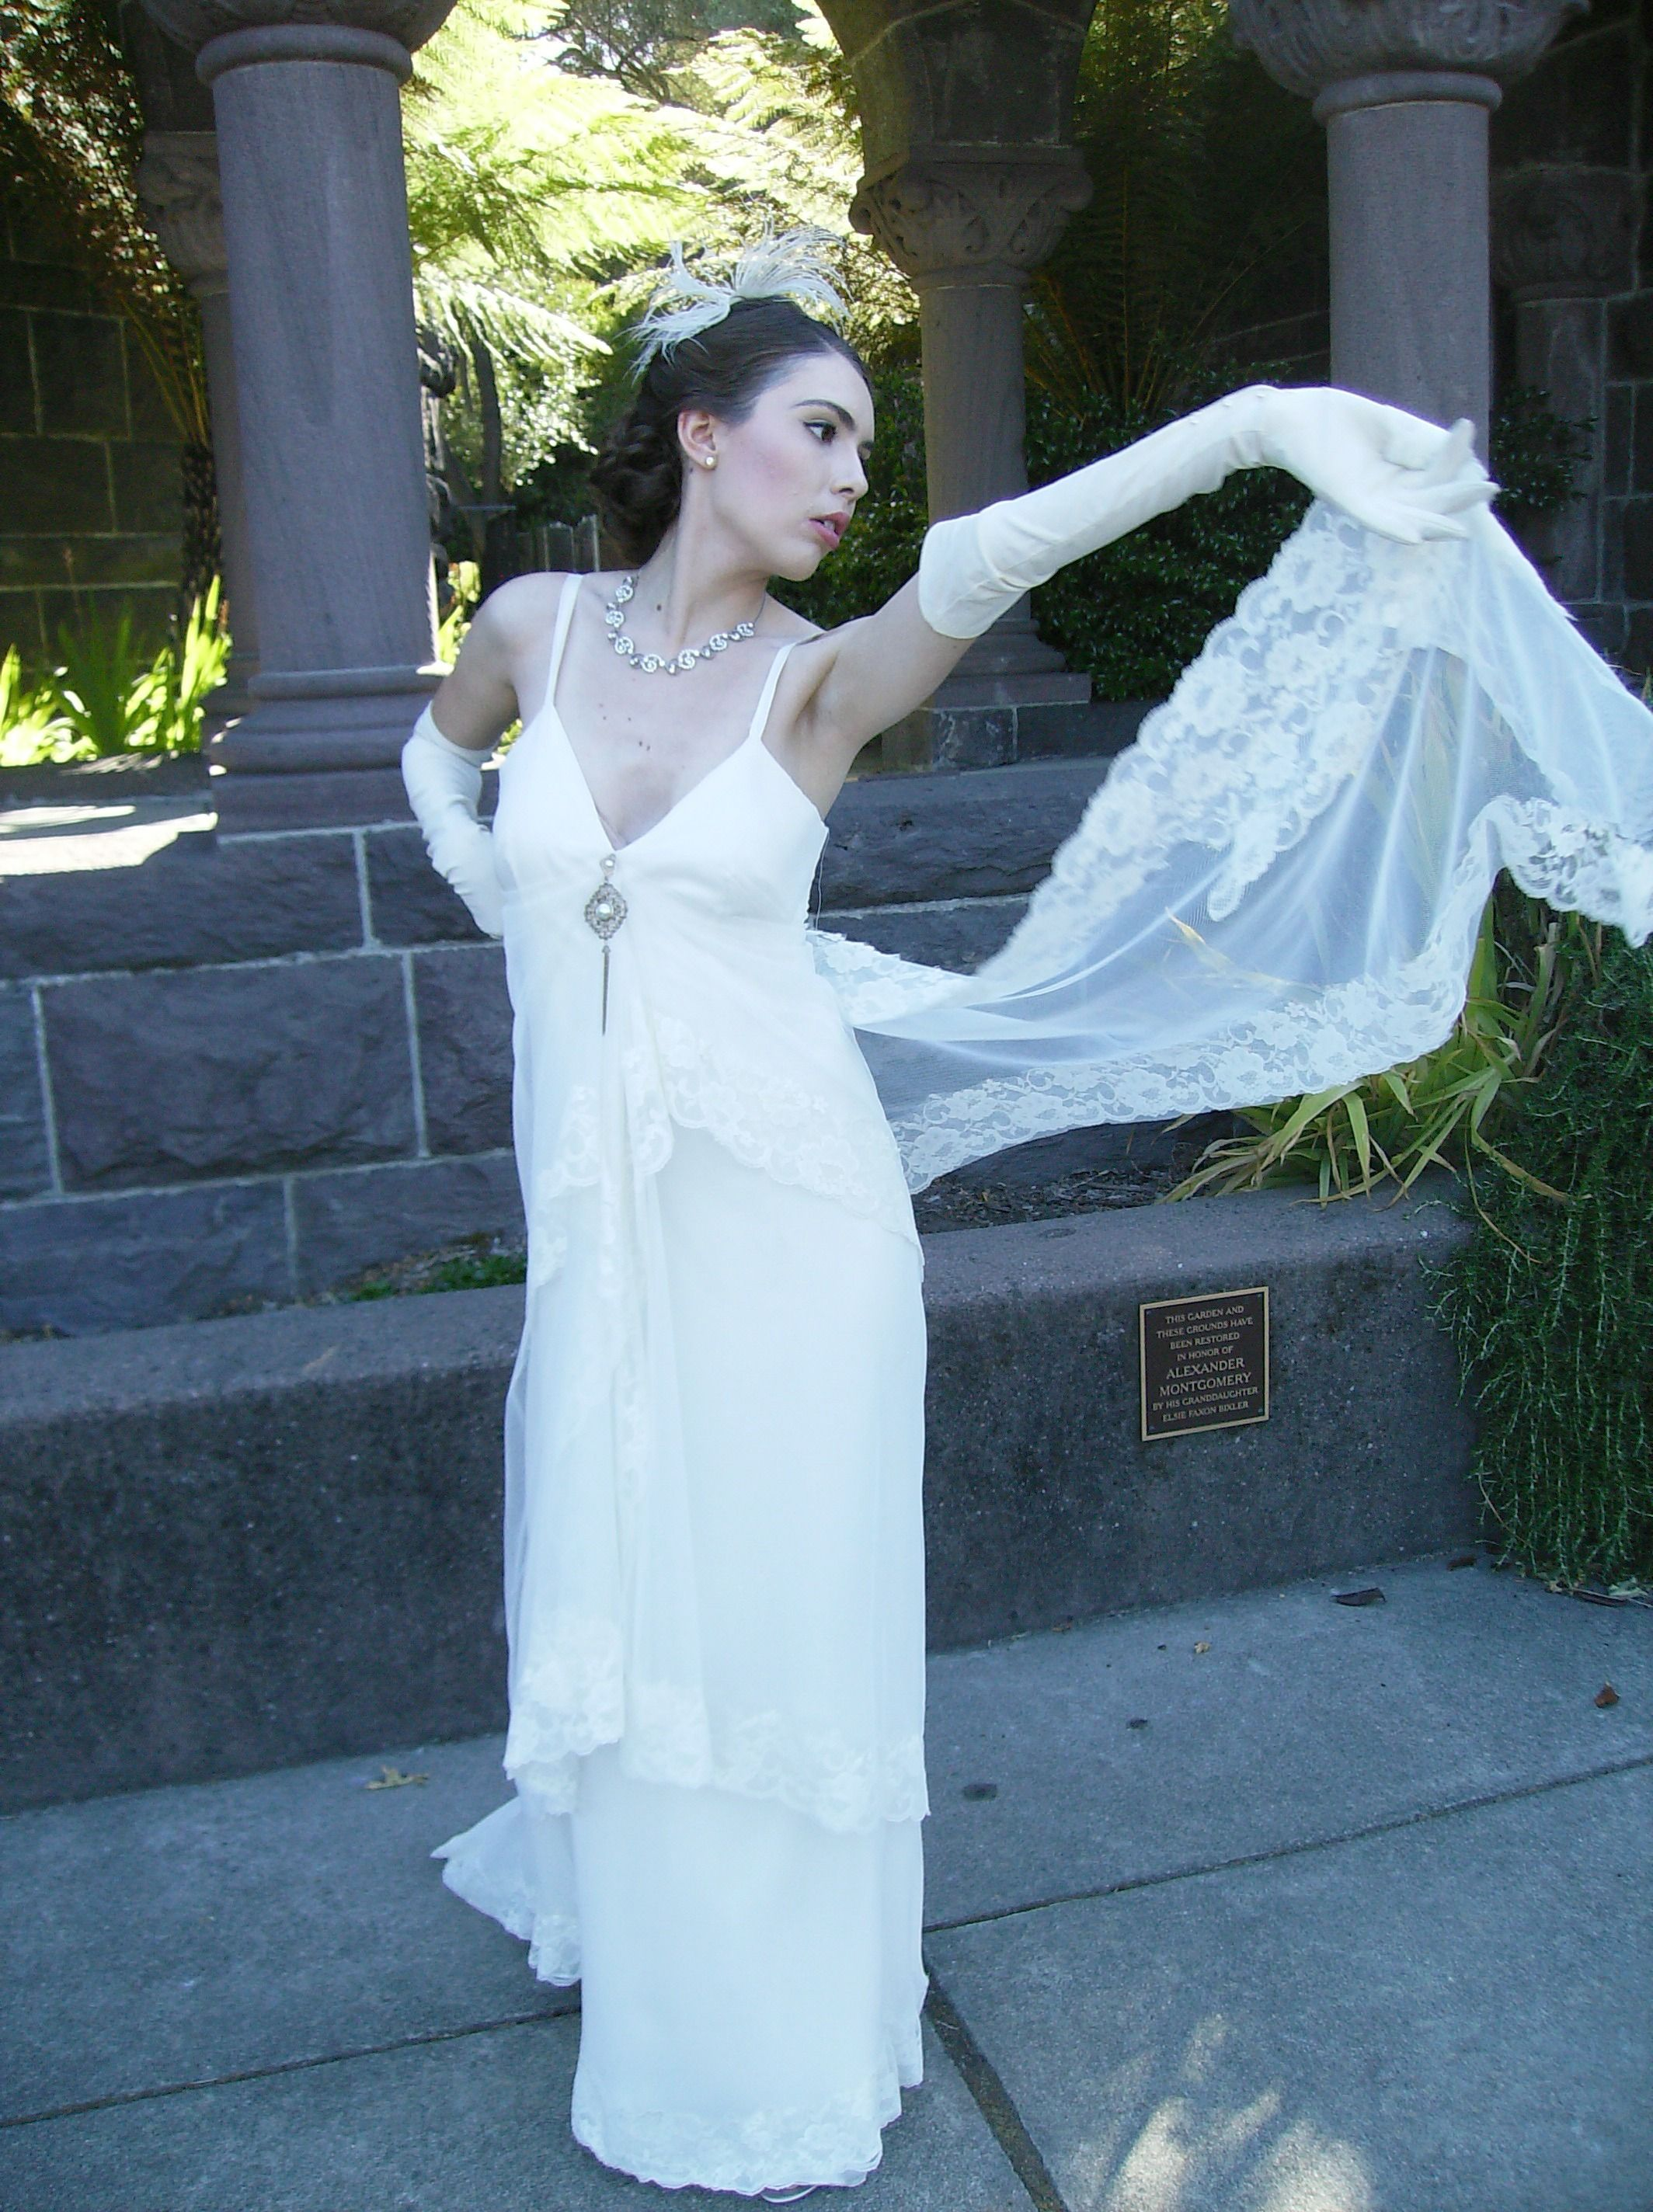 The Gemma Gown from The Gatsby's Bride Collection by Amy-Jo Tatum